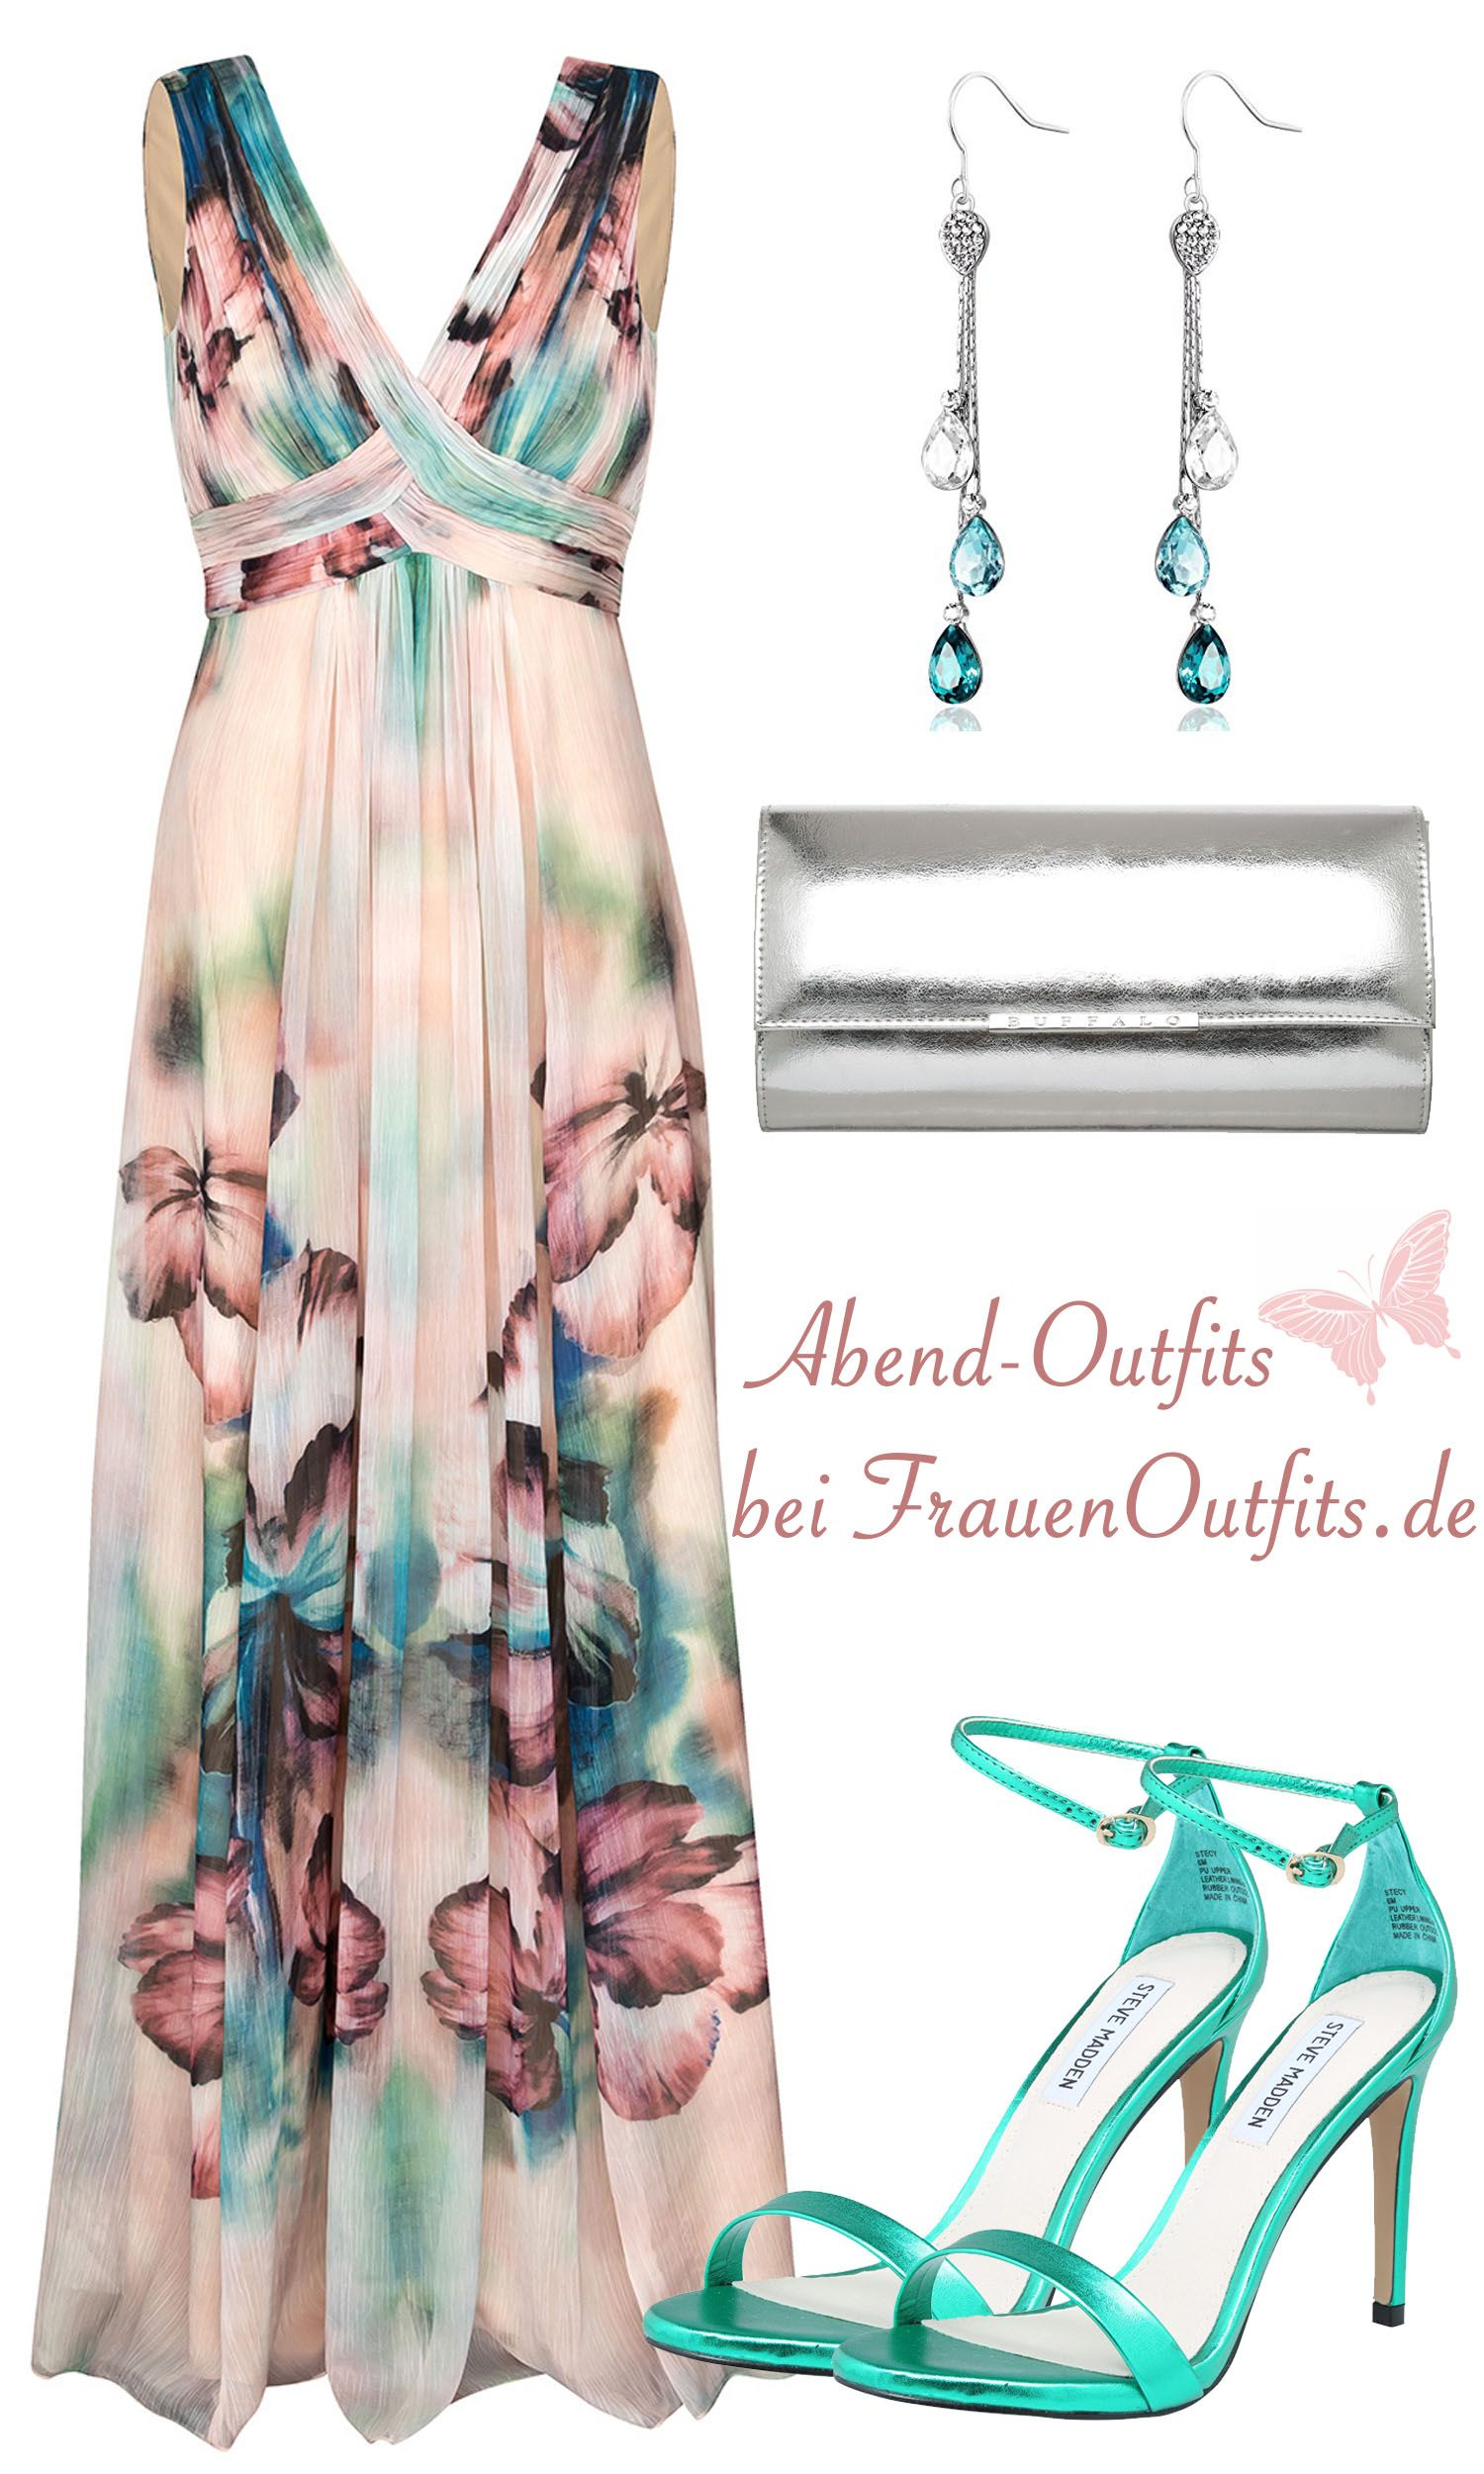 sommererwachen outfit - abend outfits bei frauenoutfits.de